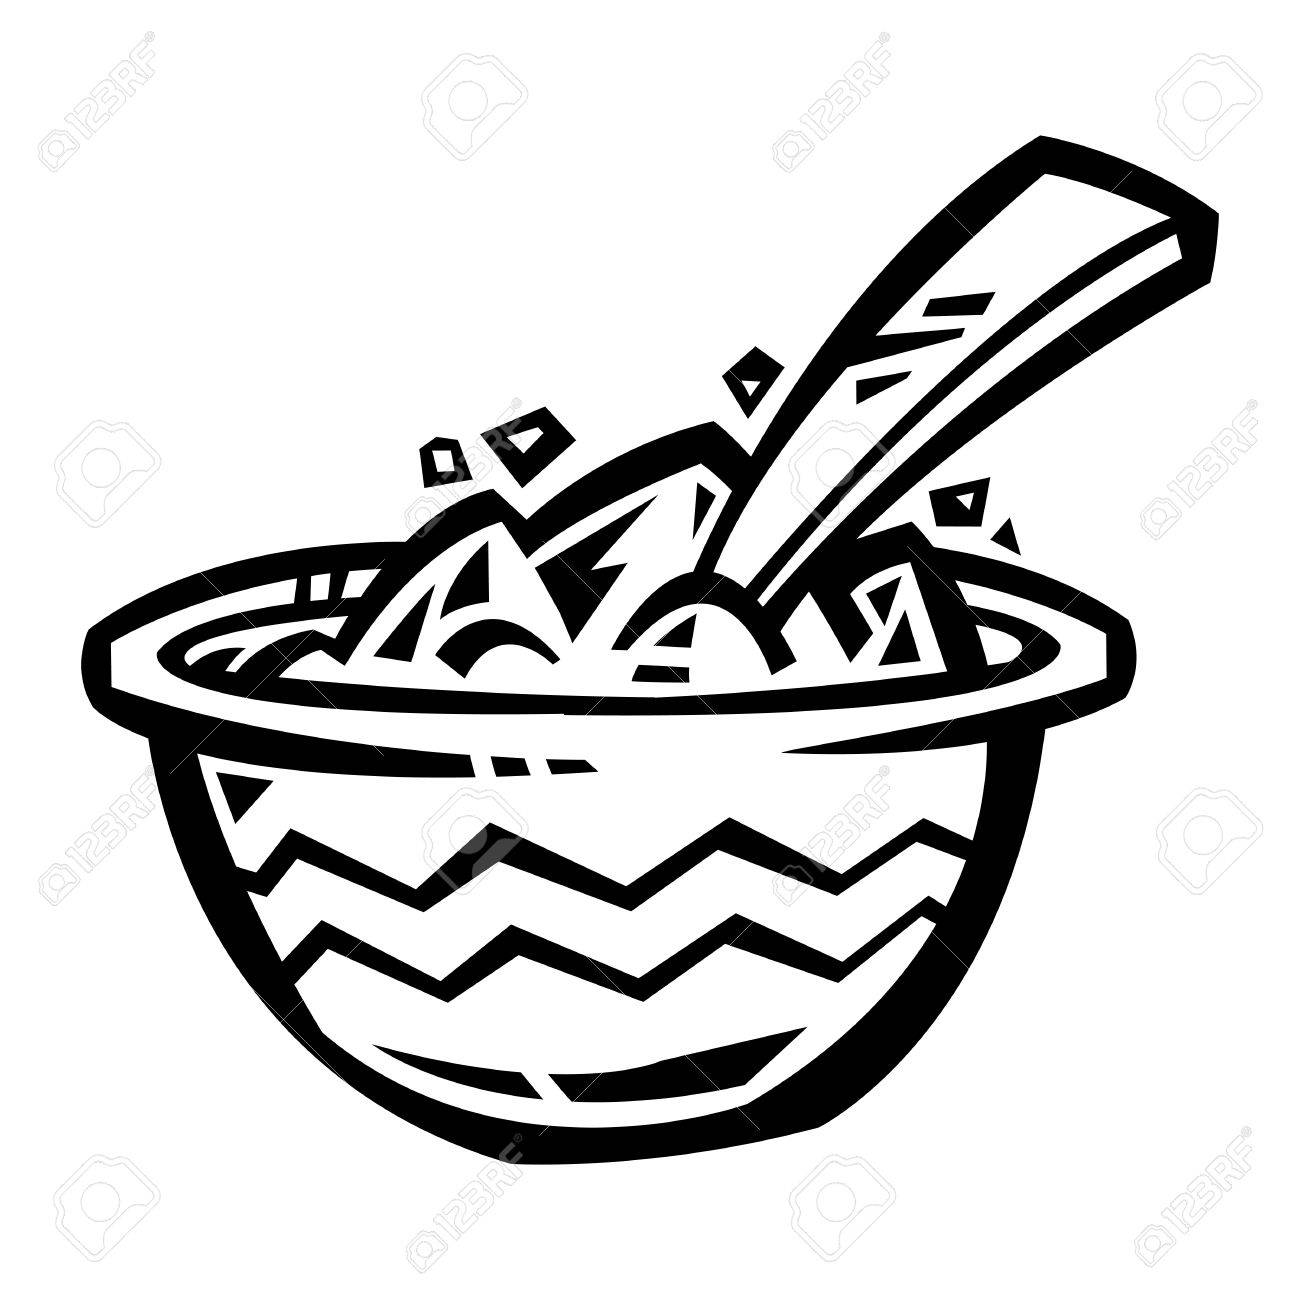 mixing bowl drawing at getdrawings com free for personal use rh getdrawings com mixing bowl and wooden spoon clipart